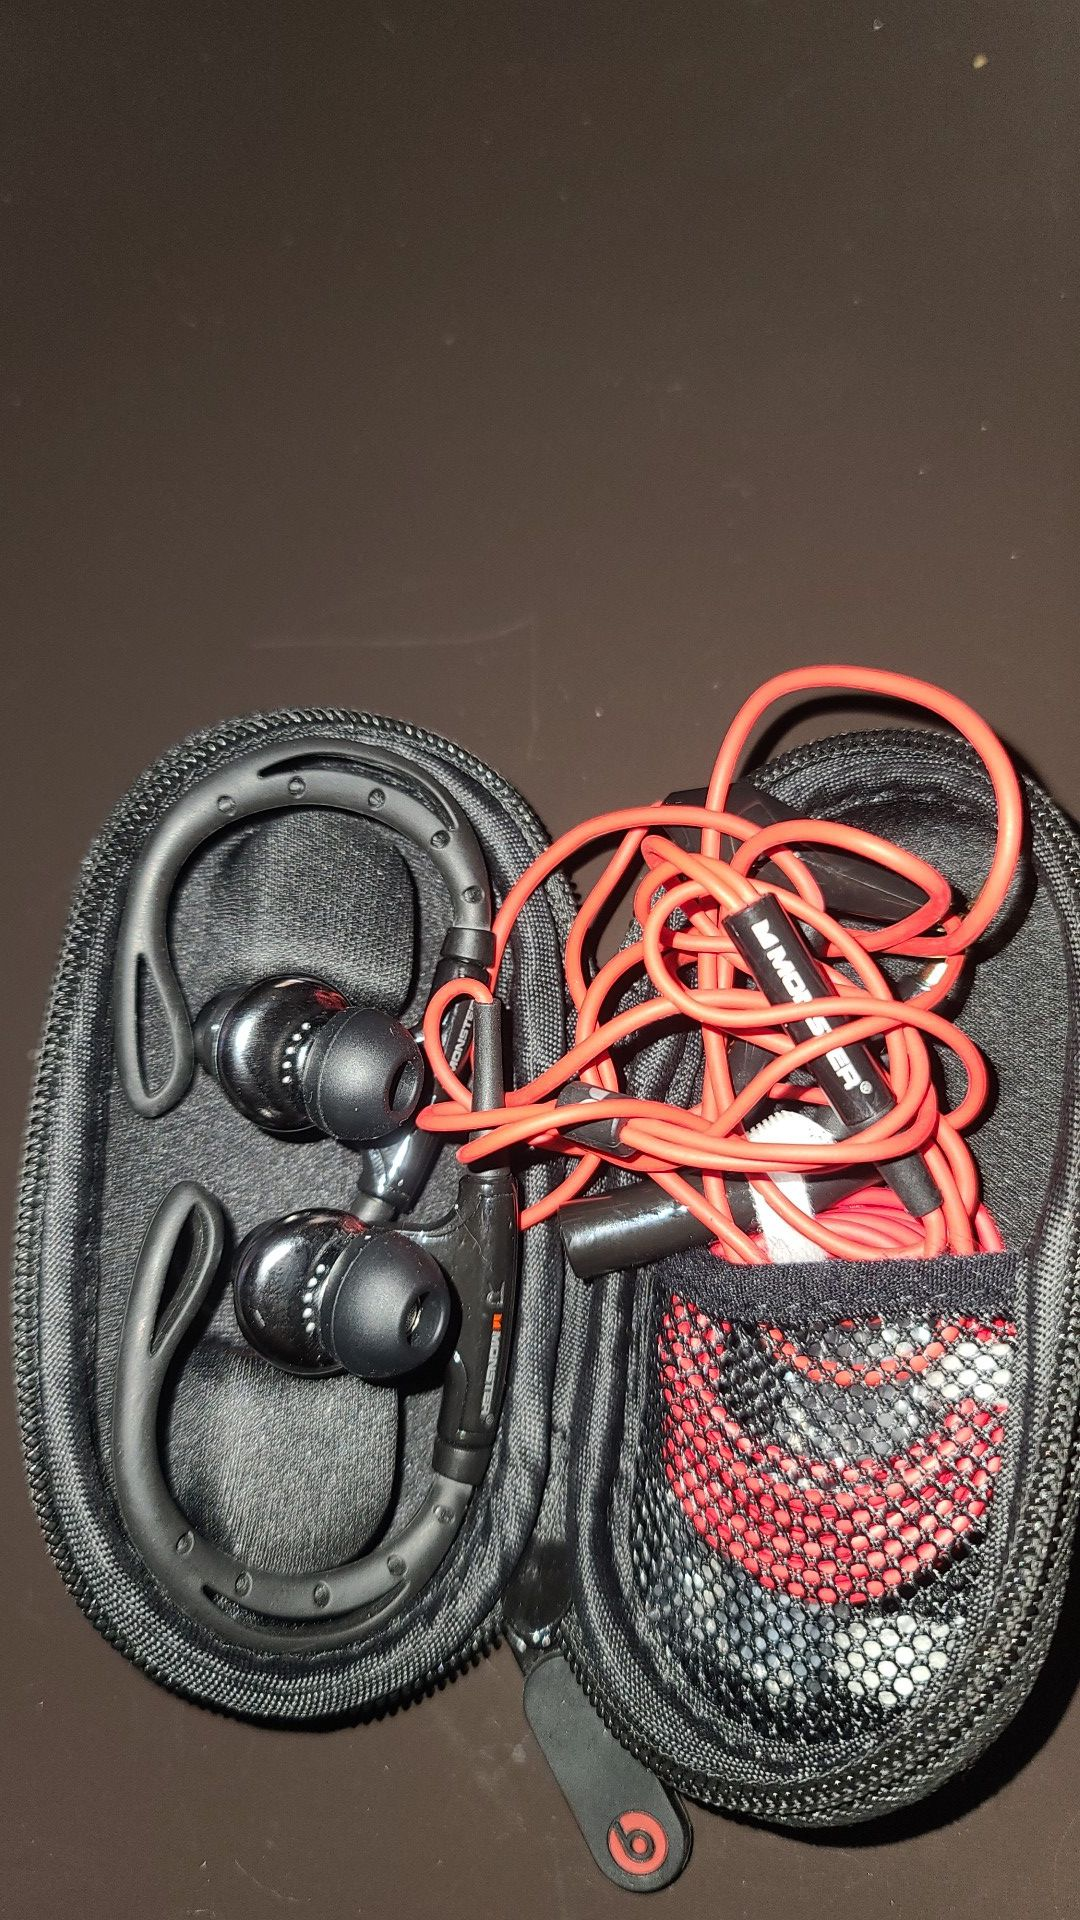 Beats wired earbuds